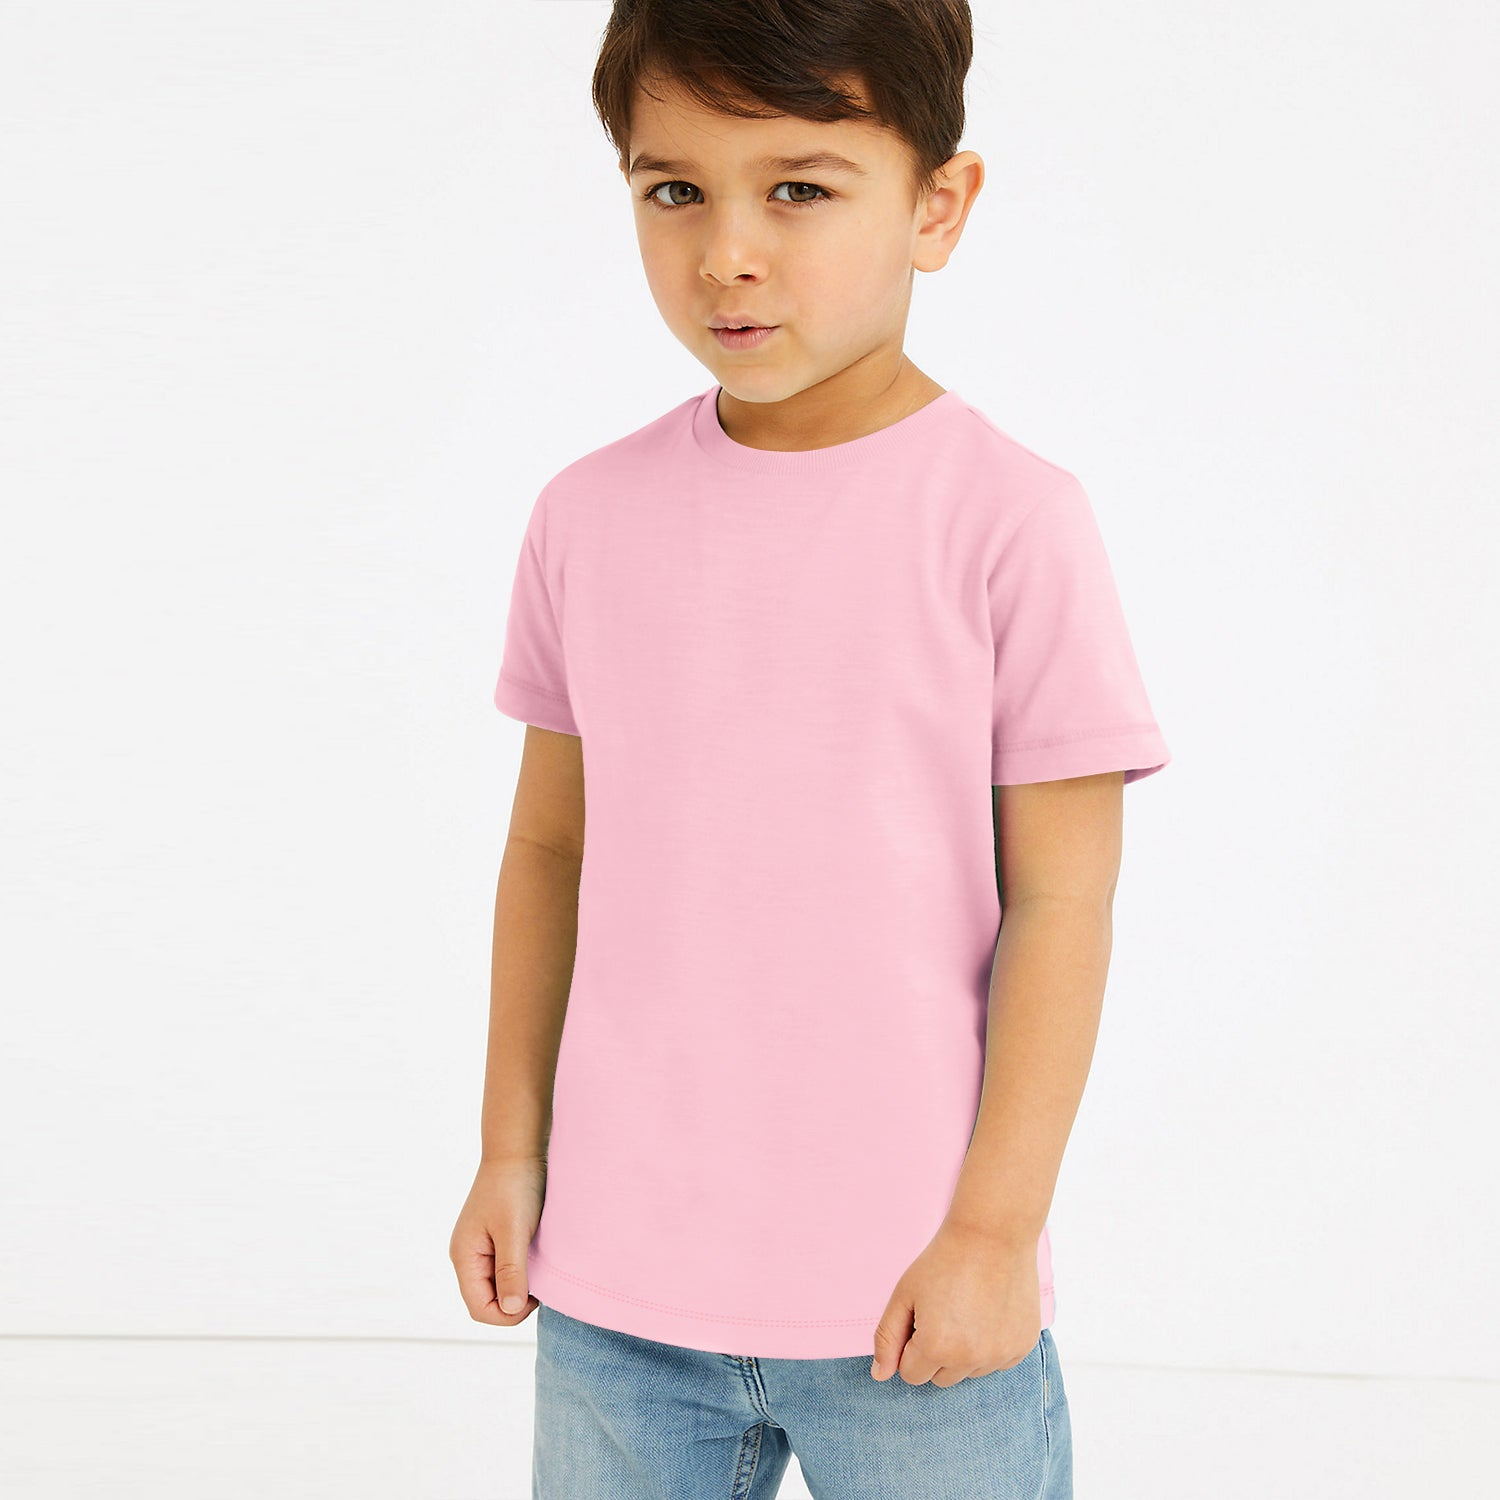 Popular Sport Crew Neck Single Jersey Tee Shirt For Kids-Light Pink-BE12243